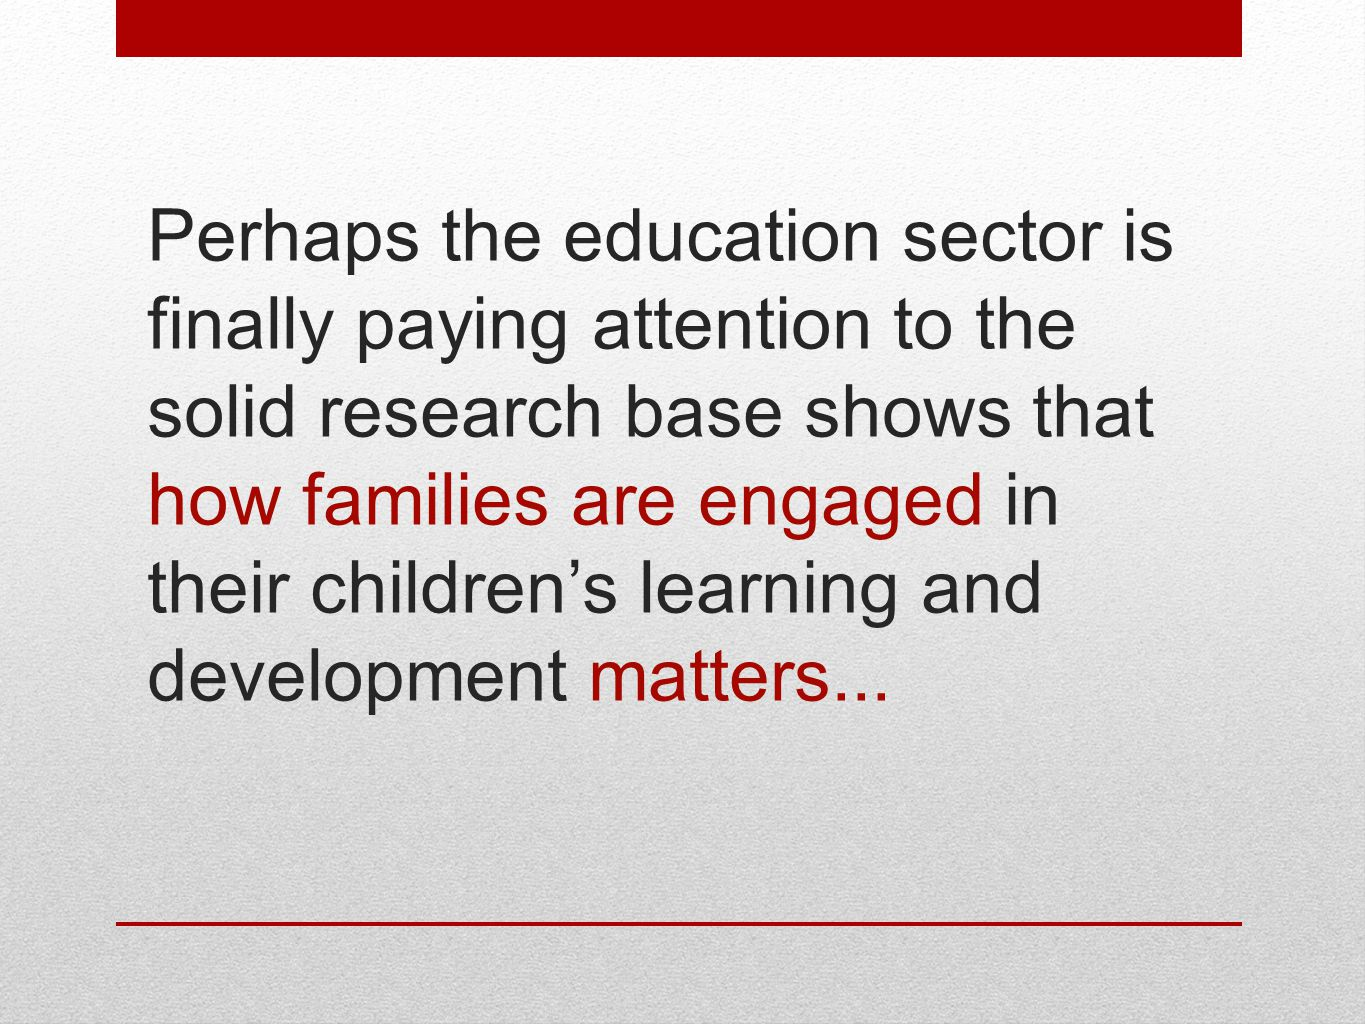 Perhaps the education sector is finally paying attention to the solid research base shows that how families are engaged in their children's learning and development matters...